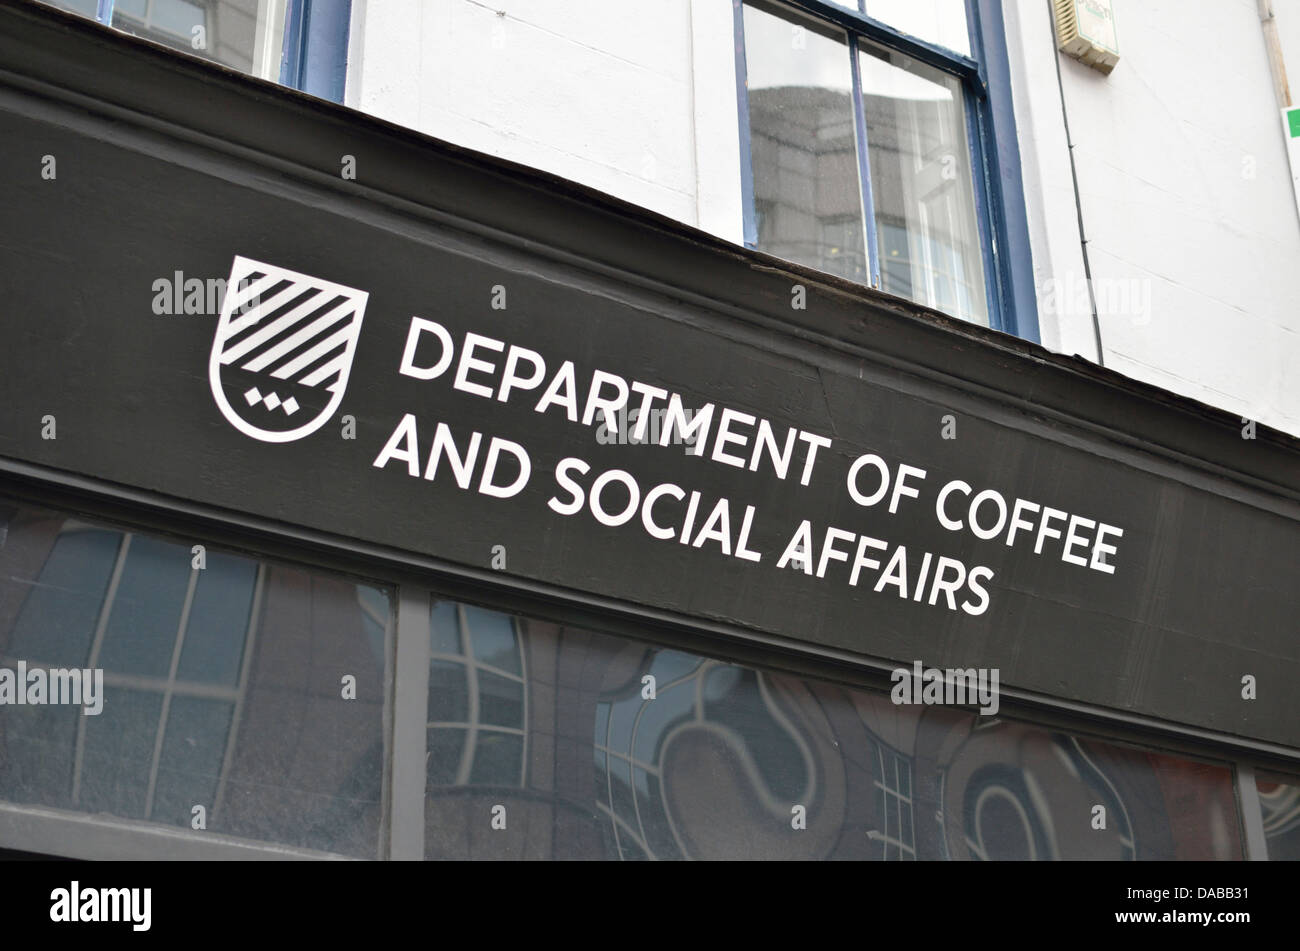 Department of Coffee and Social Affairs coffee house cafe in Leather Lane, Farringdon, London, UK Stock Photo